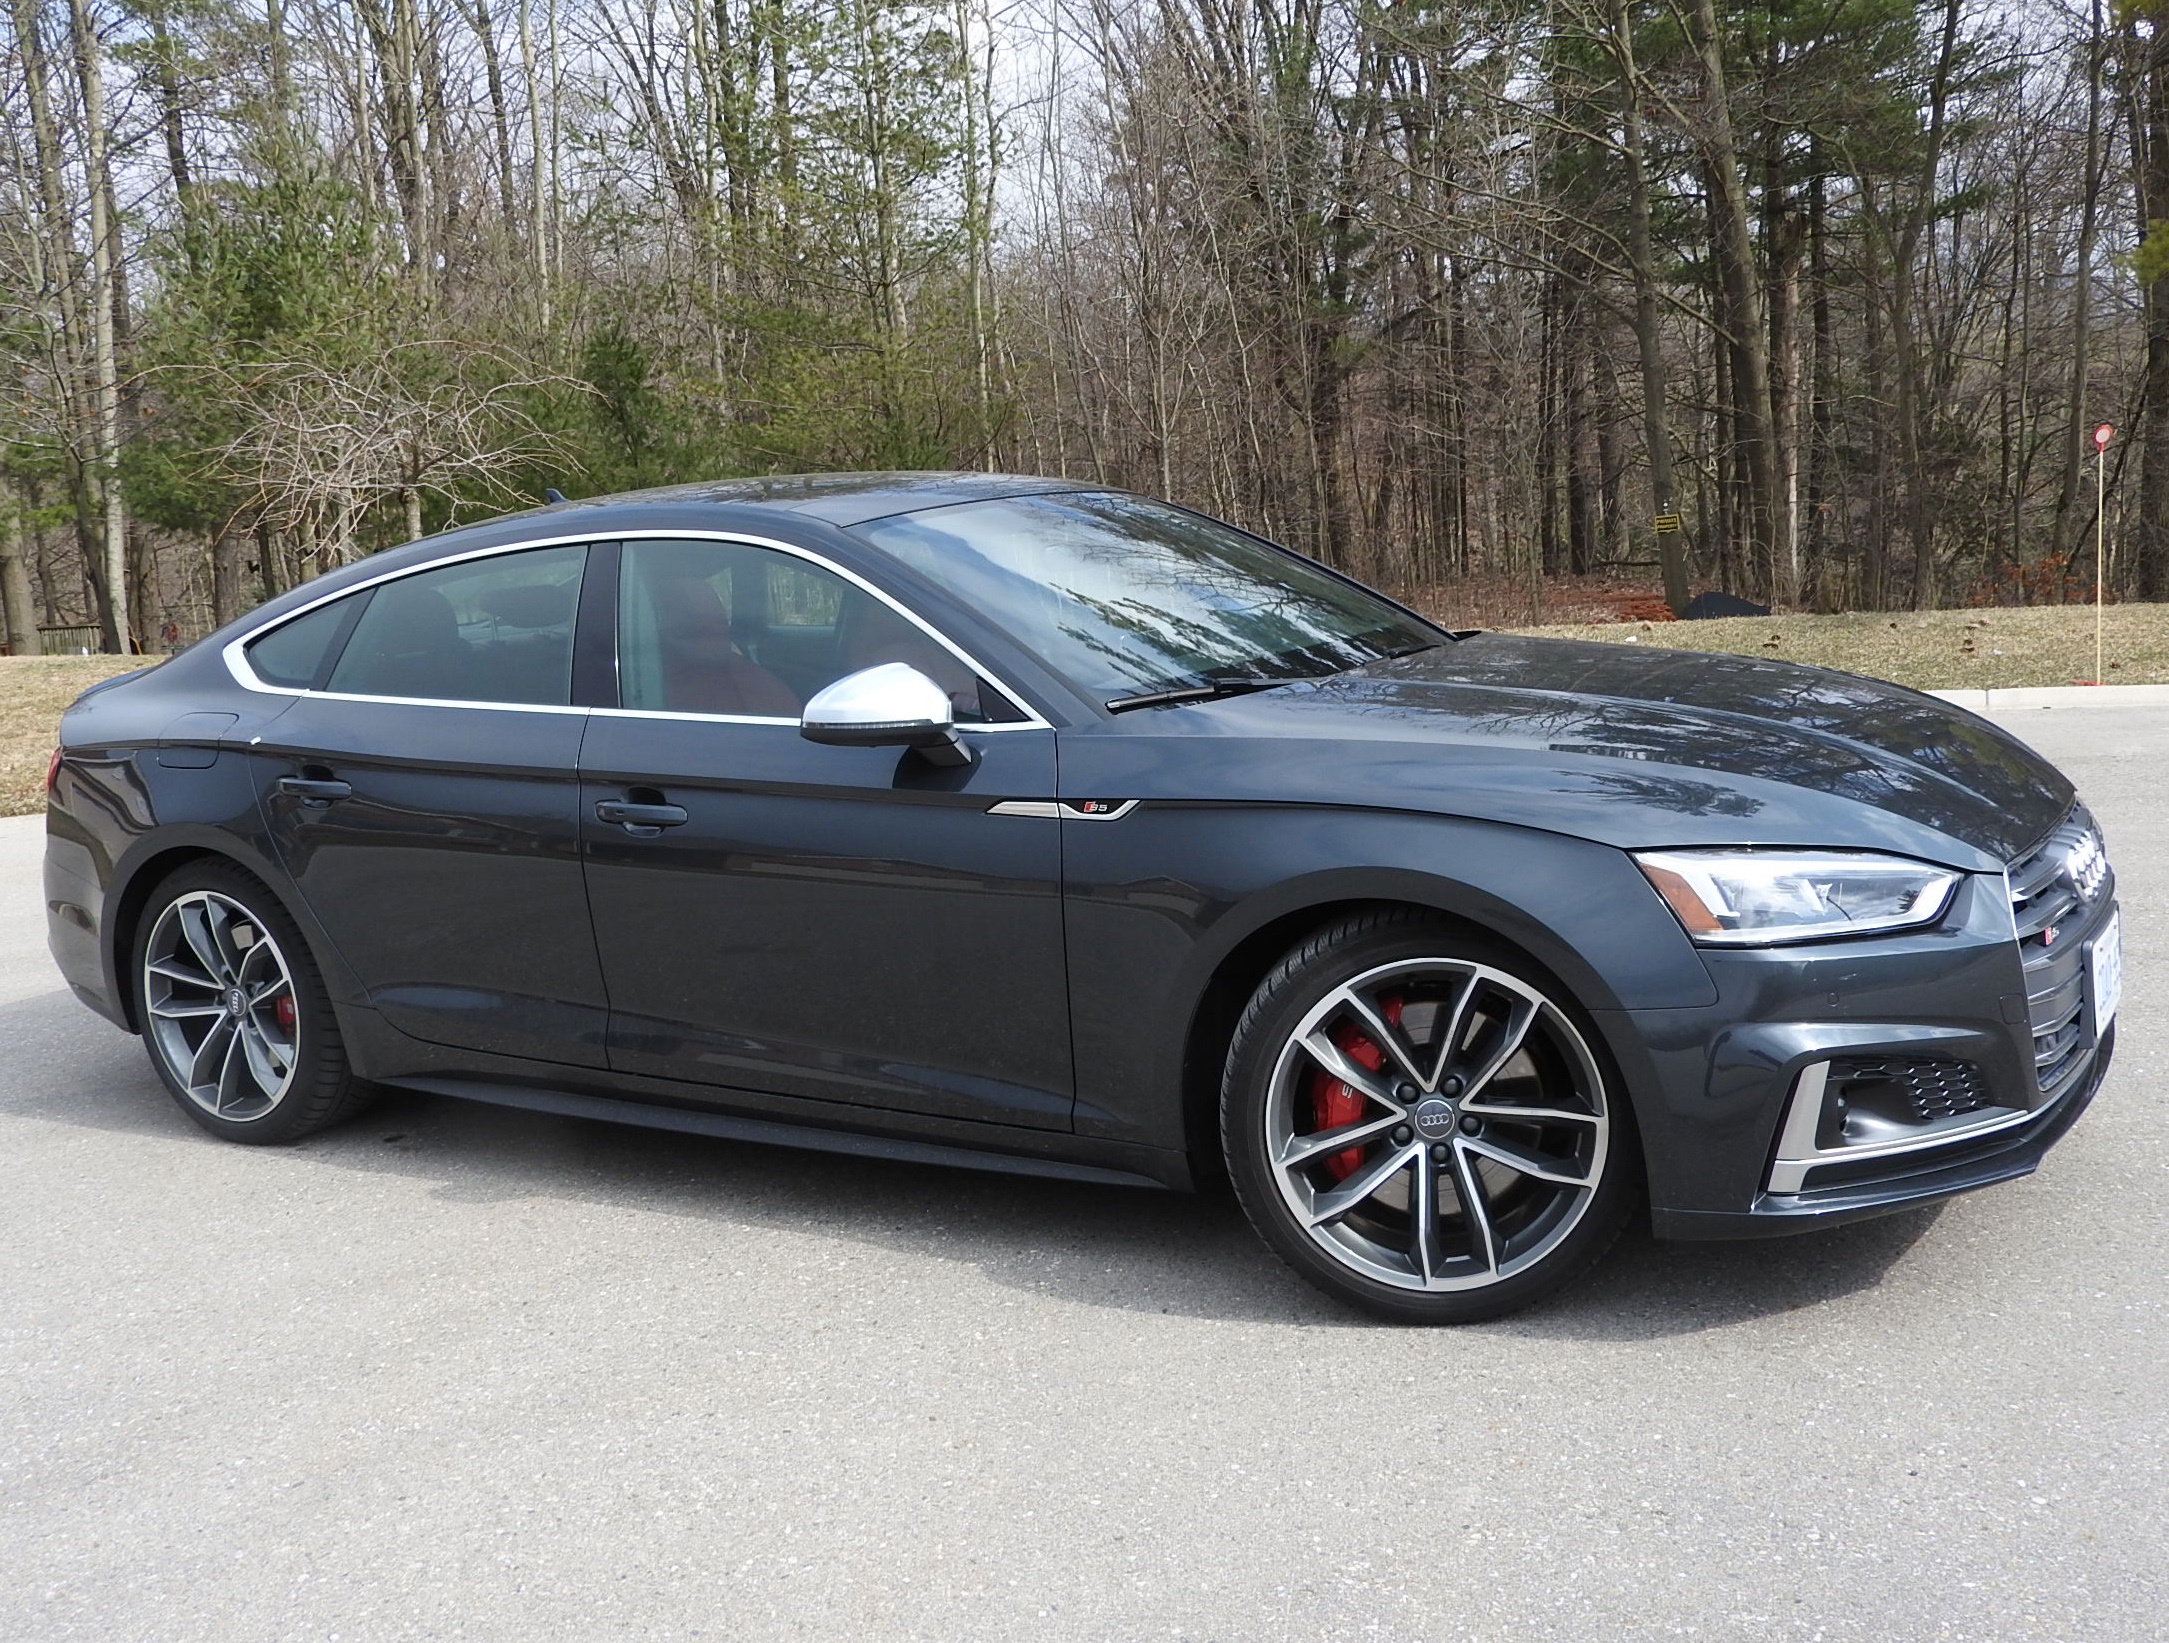 Sportback Adds Utility To Audi S5 Lineup Wheels Ca